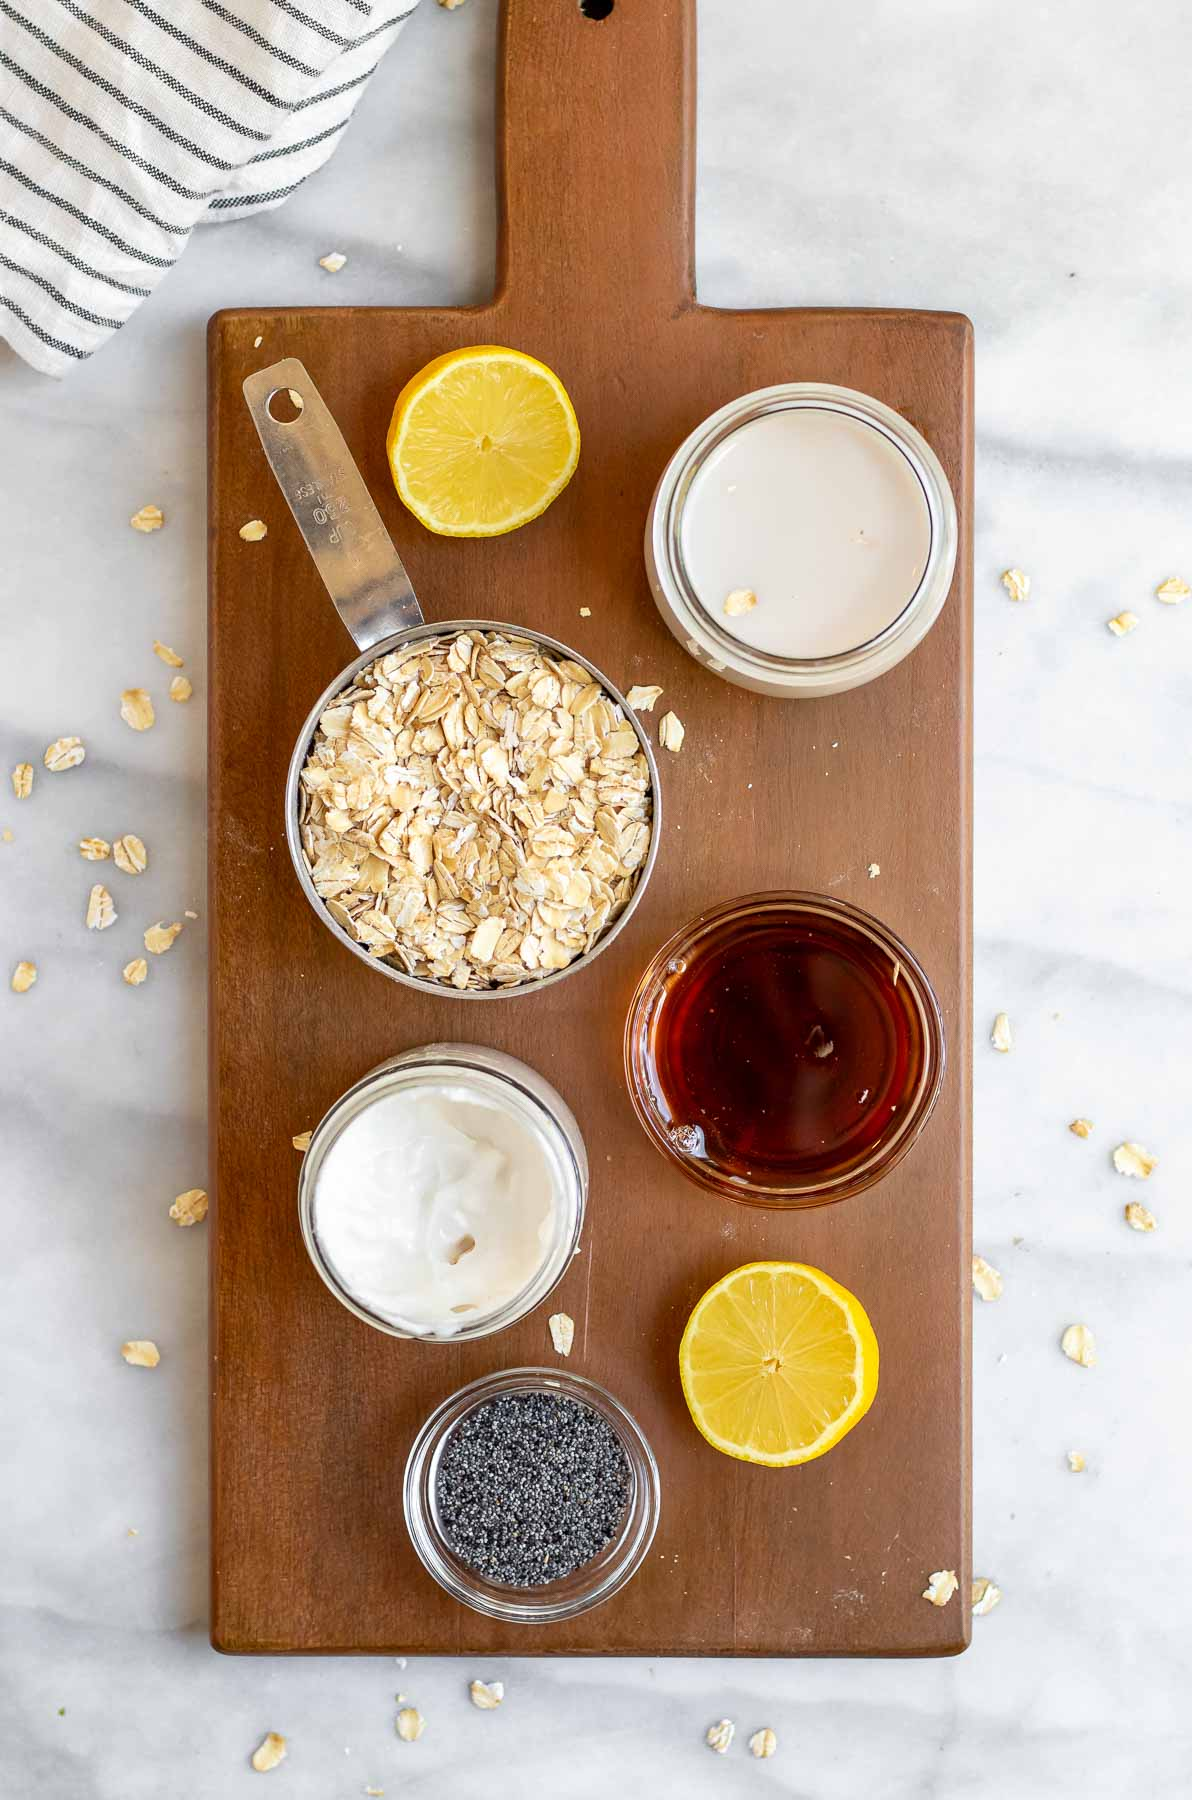 Overnight oat ingredients on a wooden board.